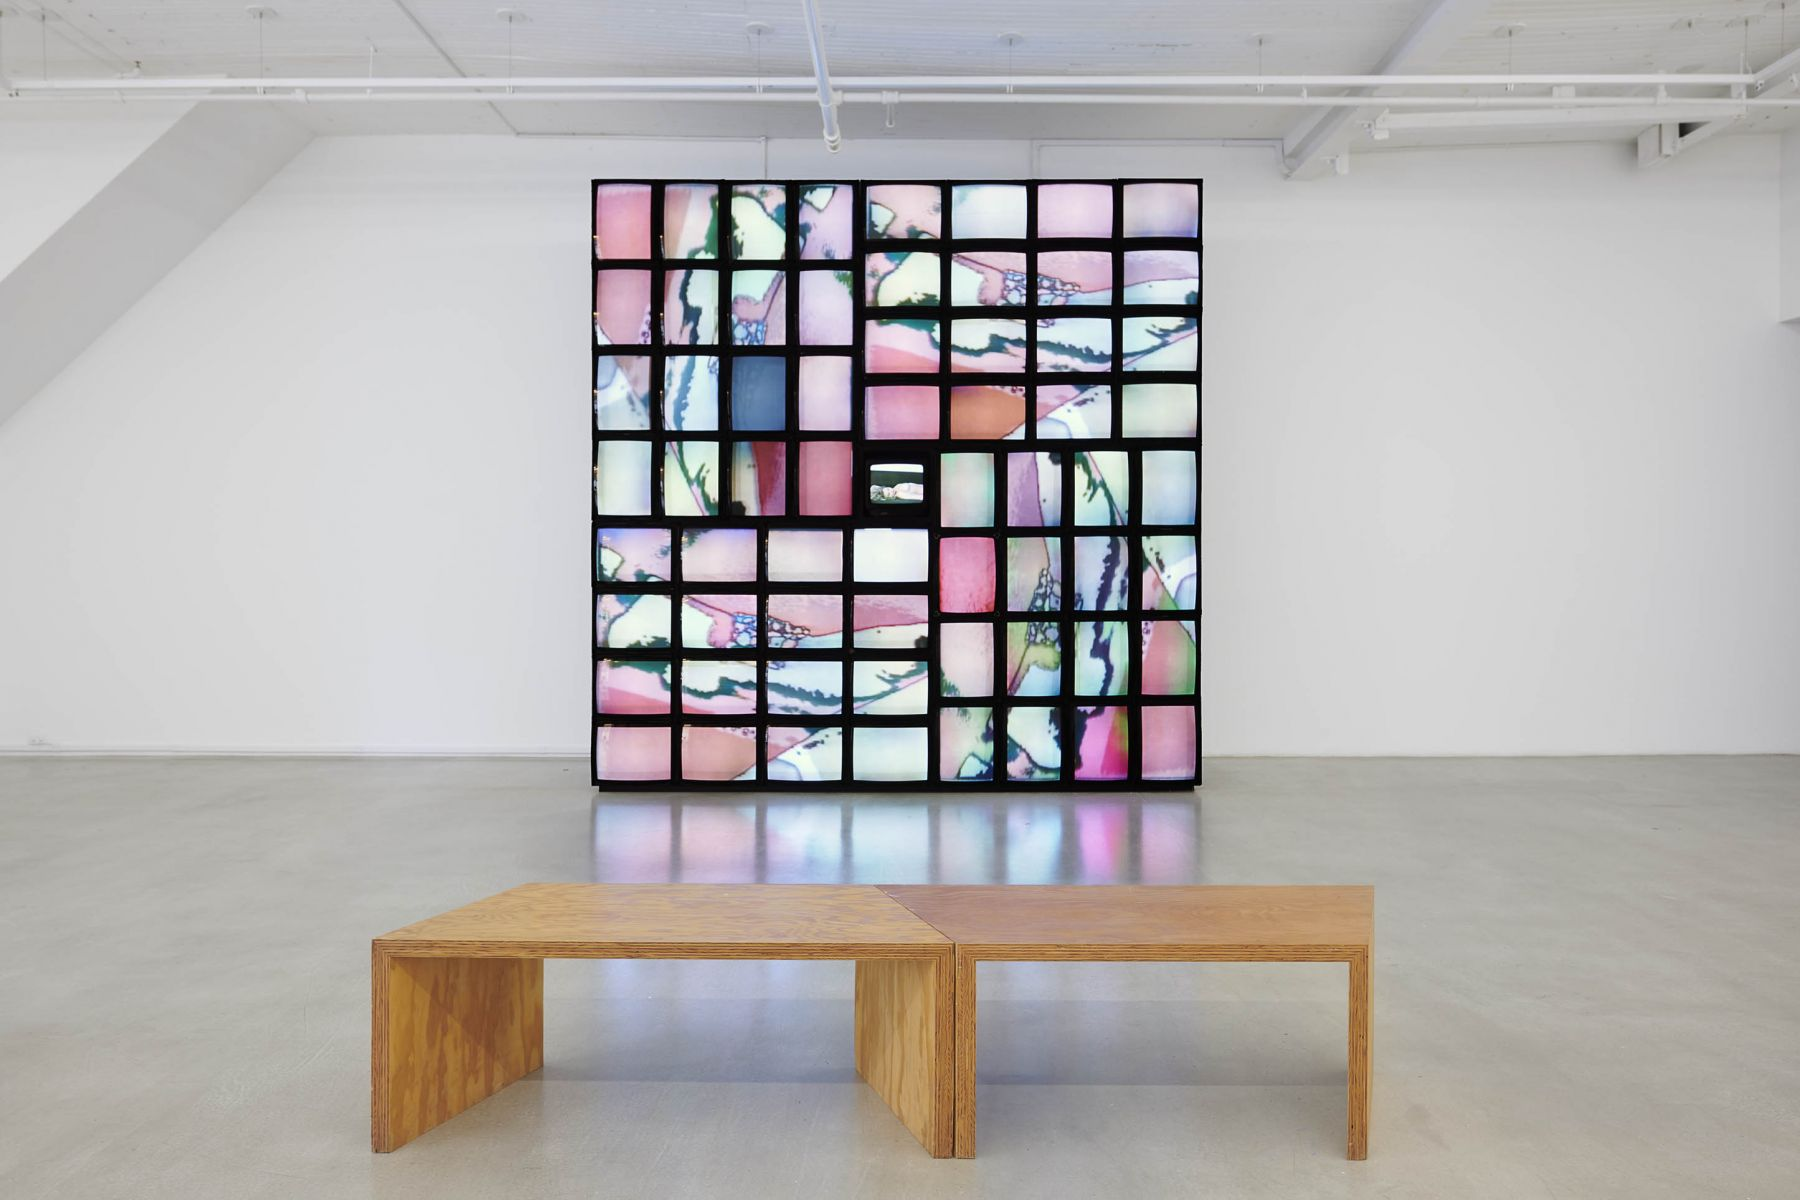 An installation comprised of many televisions